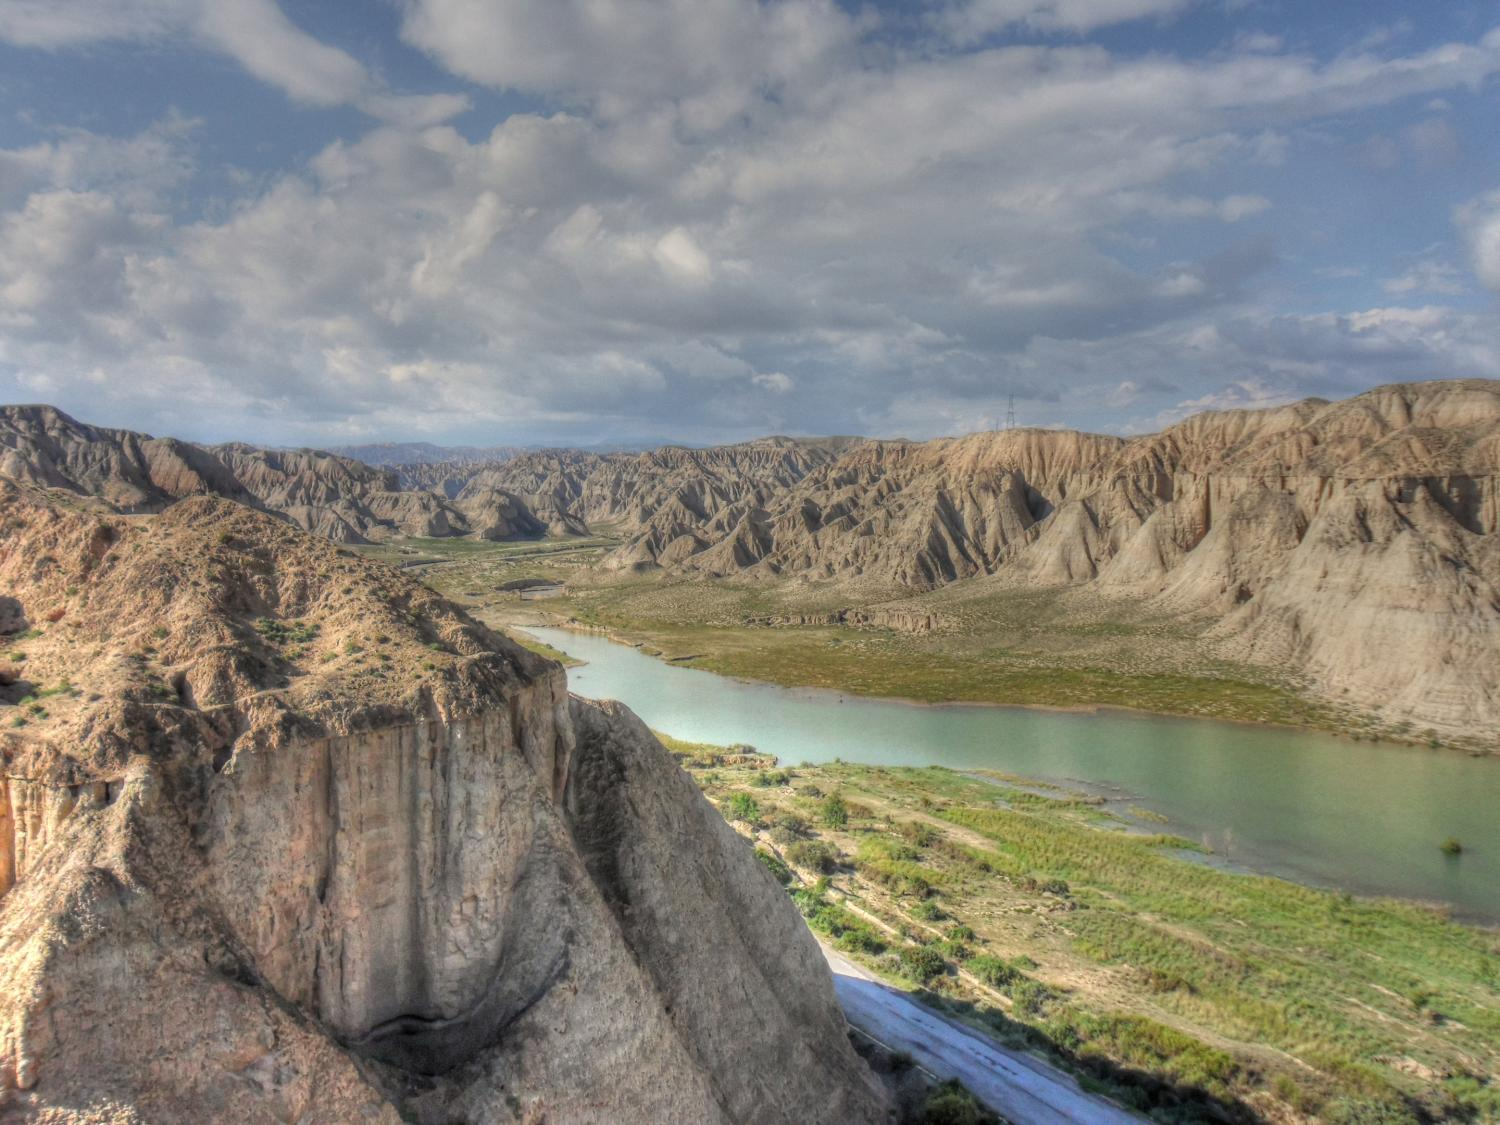 Recent Developments in Research on the Loess in China